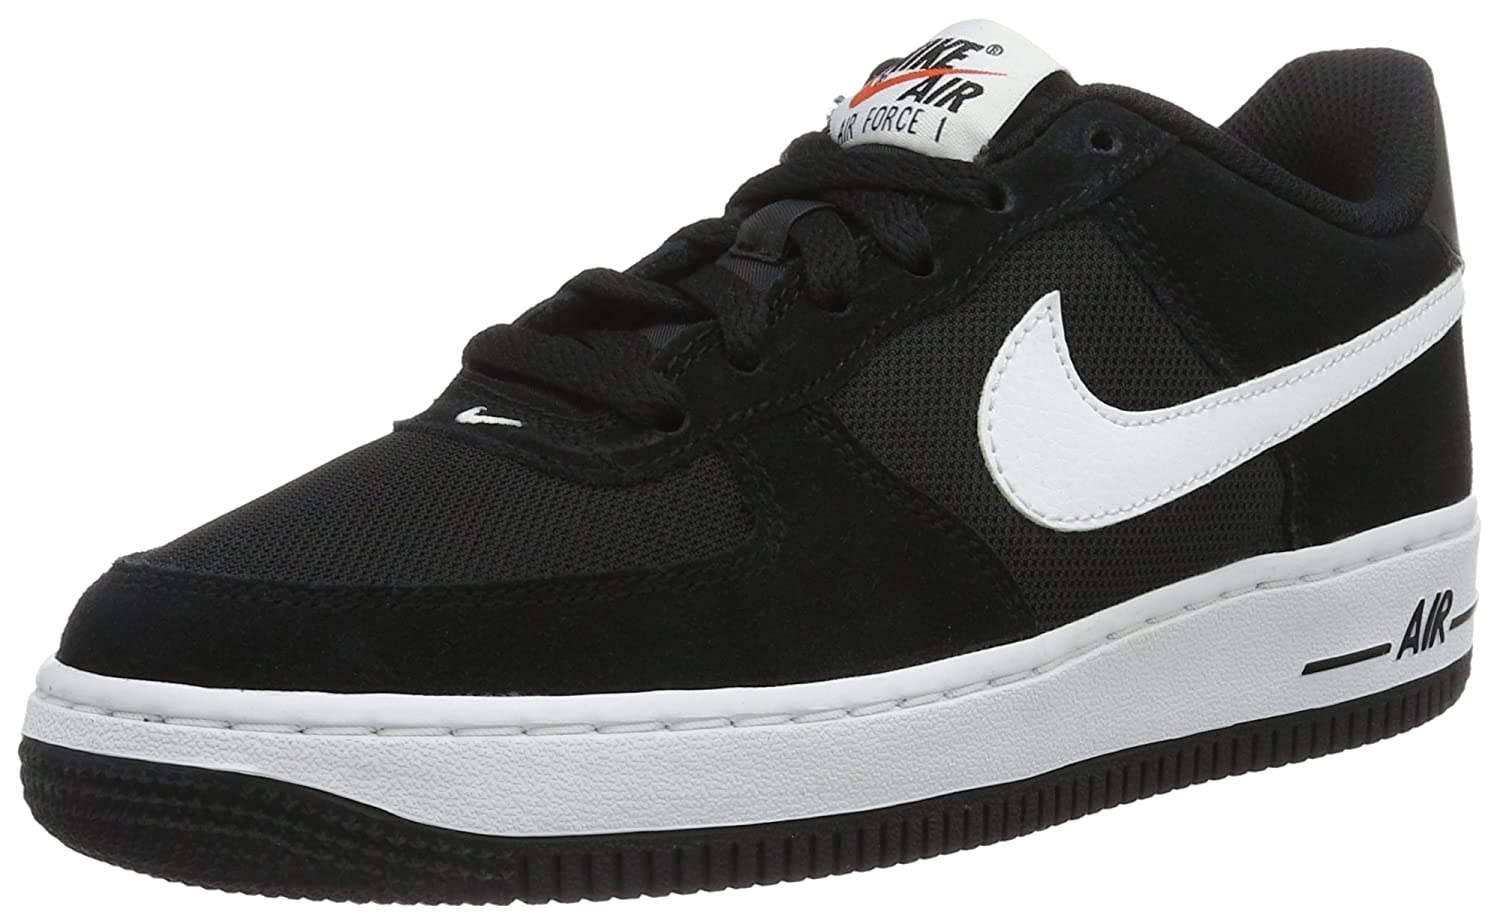 2bc596fb1372b Amazon.com | Nike Youth Air Force 1 (GS) Boys Basketball Shoes Black/White  596728-026 Size 6 | Basketball